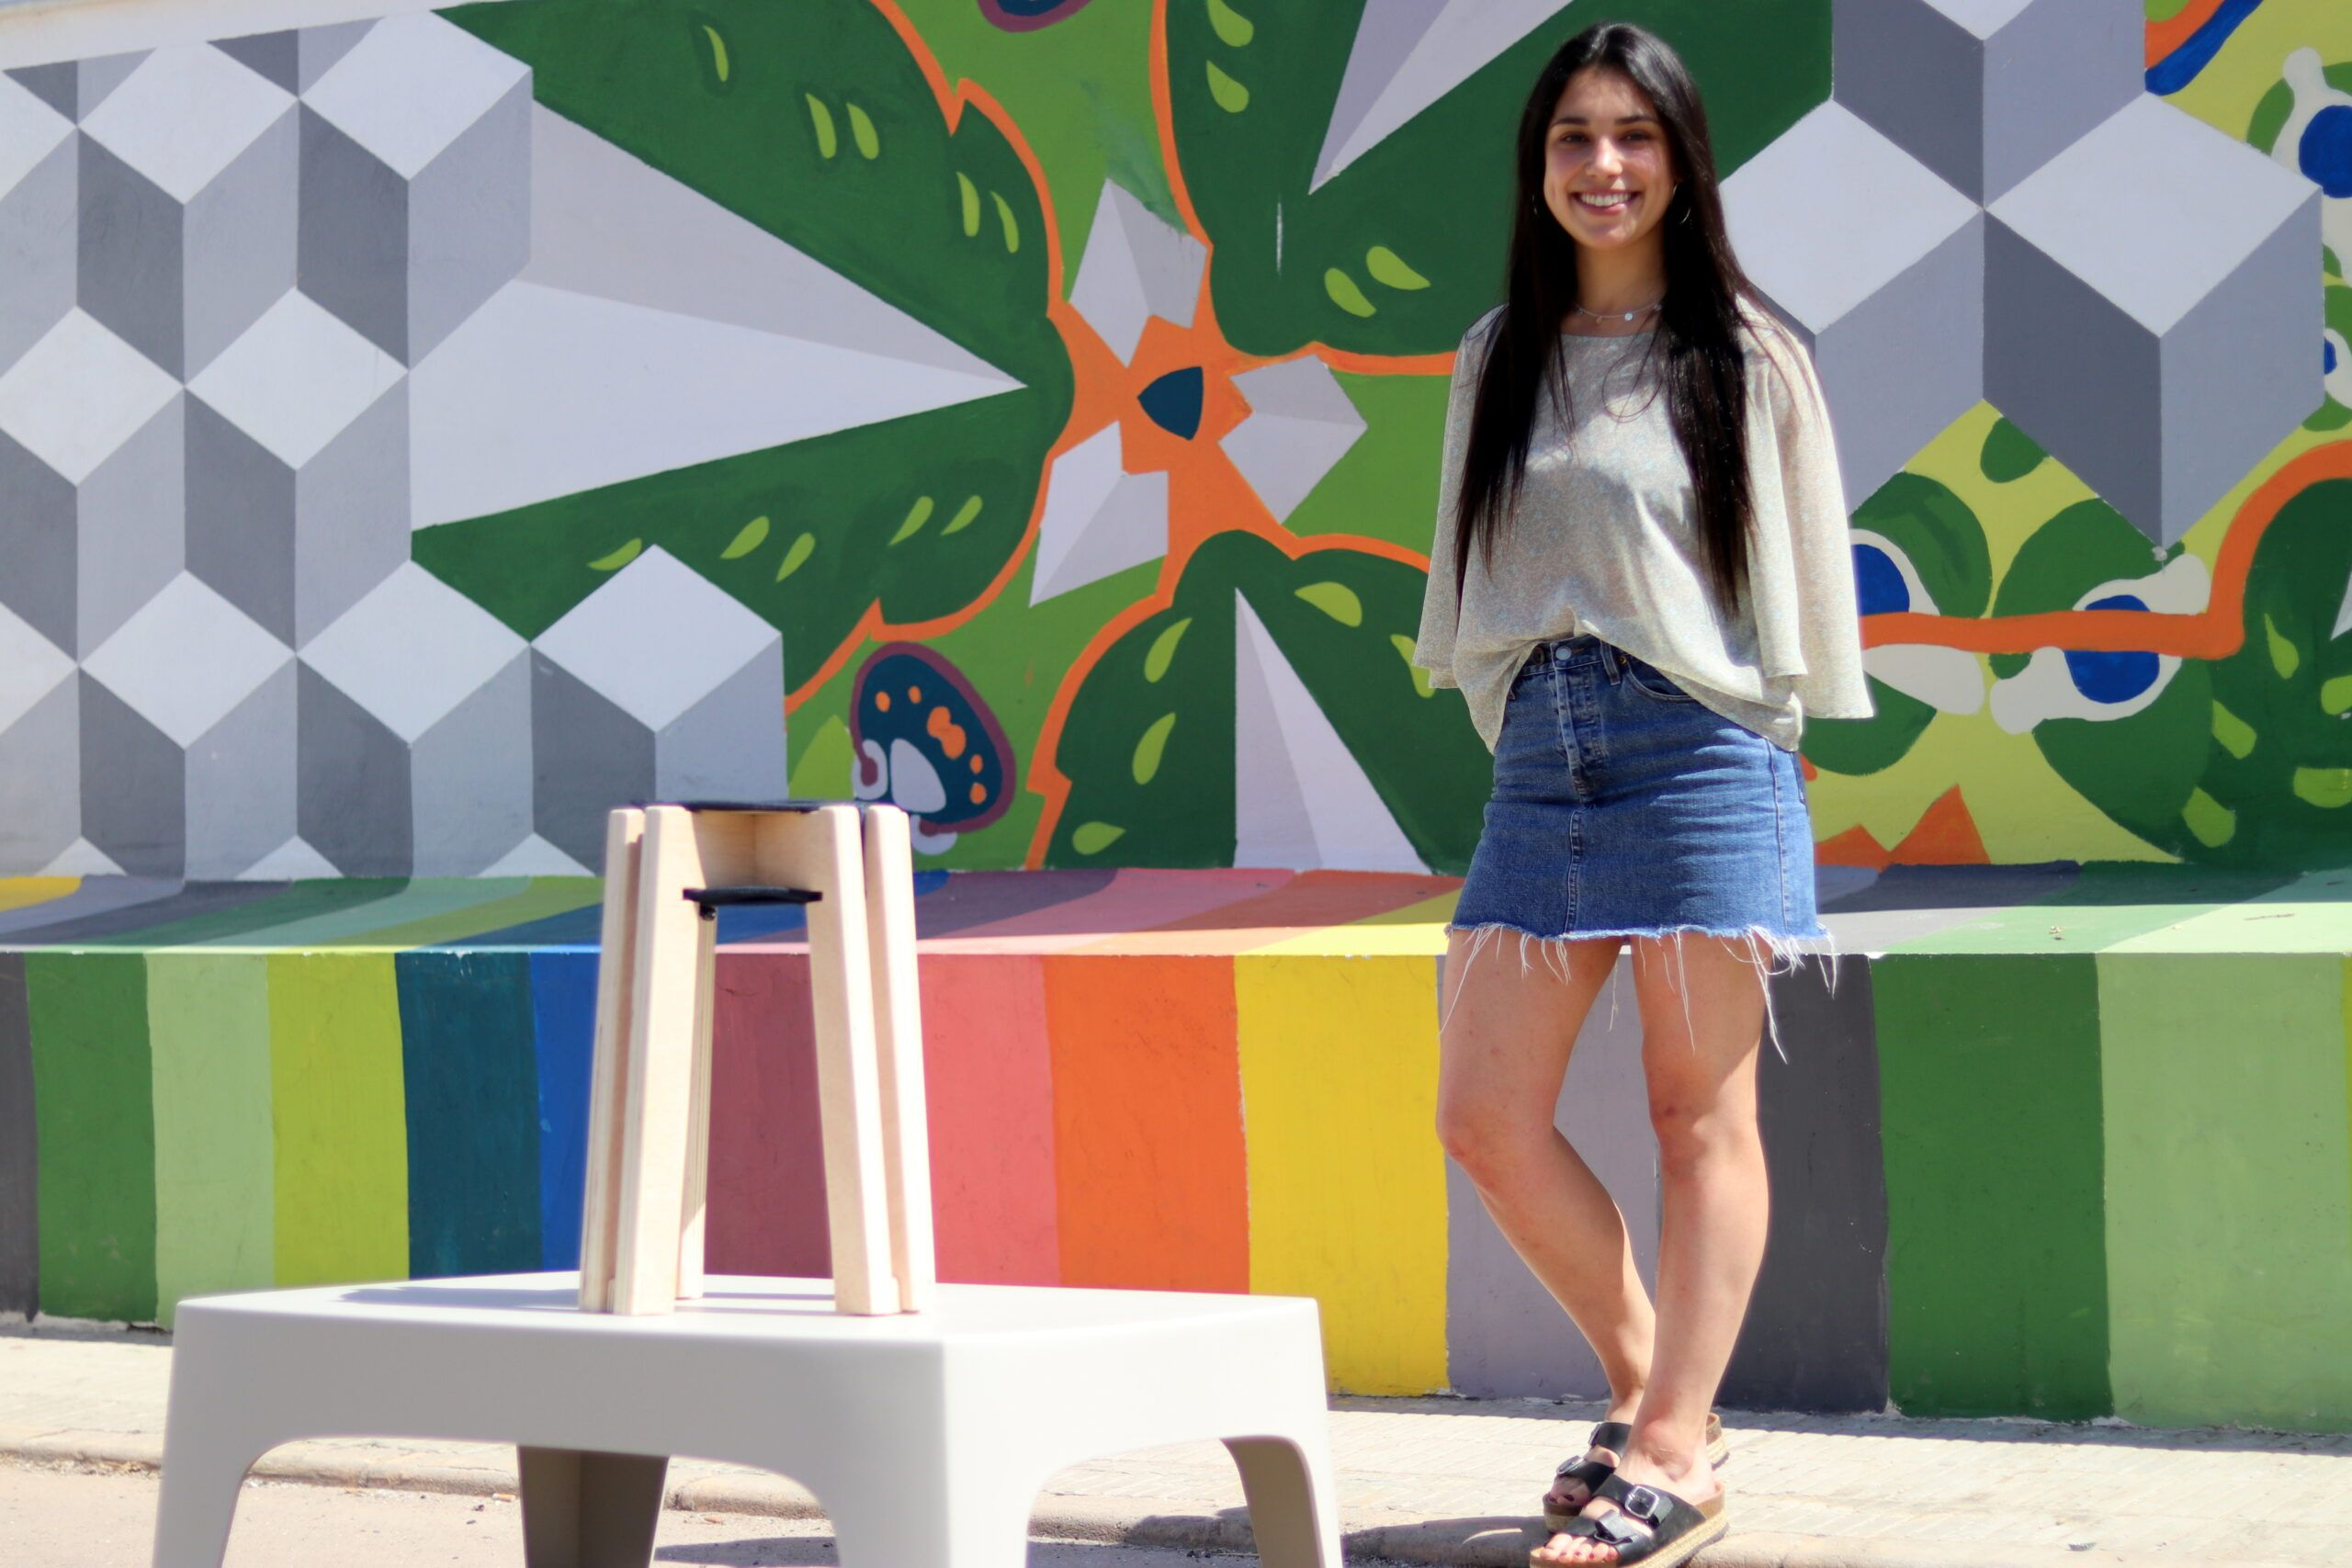 Lourdes Martín Miralles, student of 2nd Year of Industrial Design